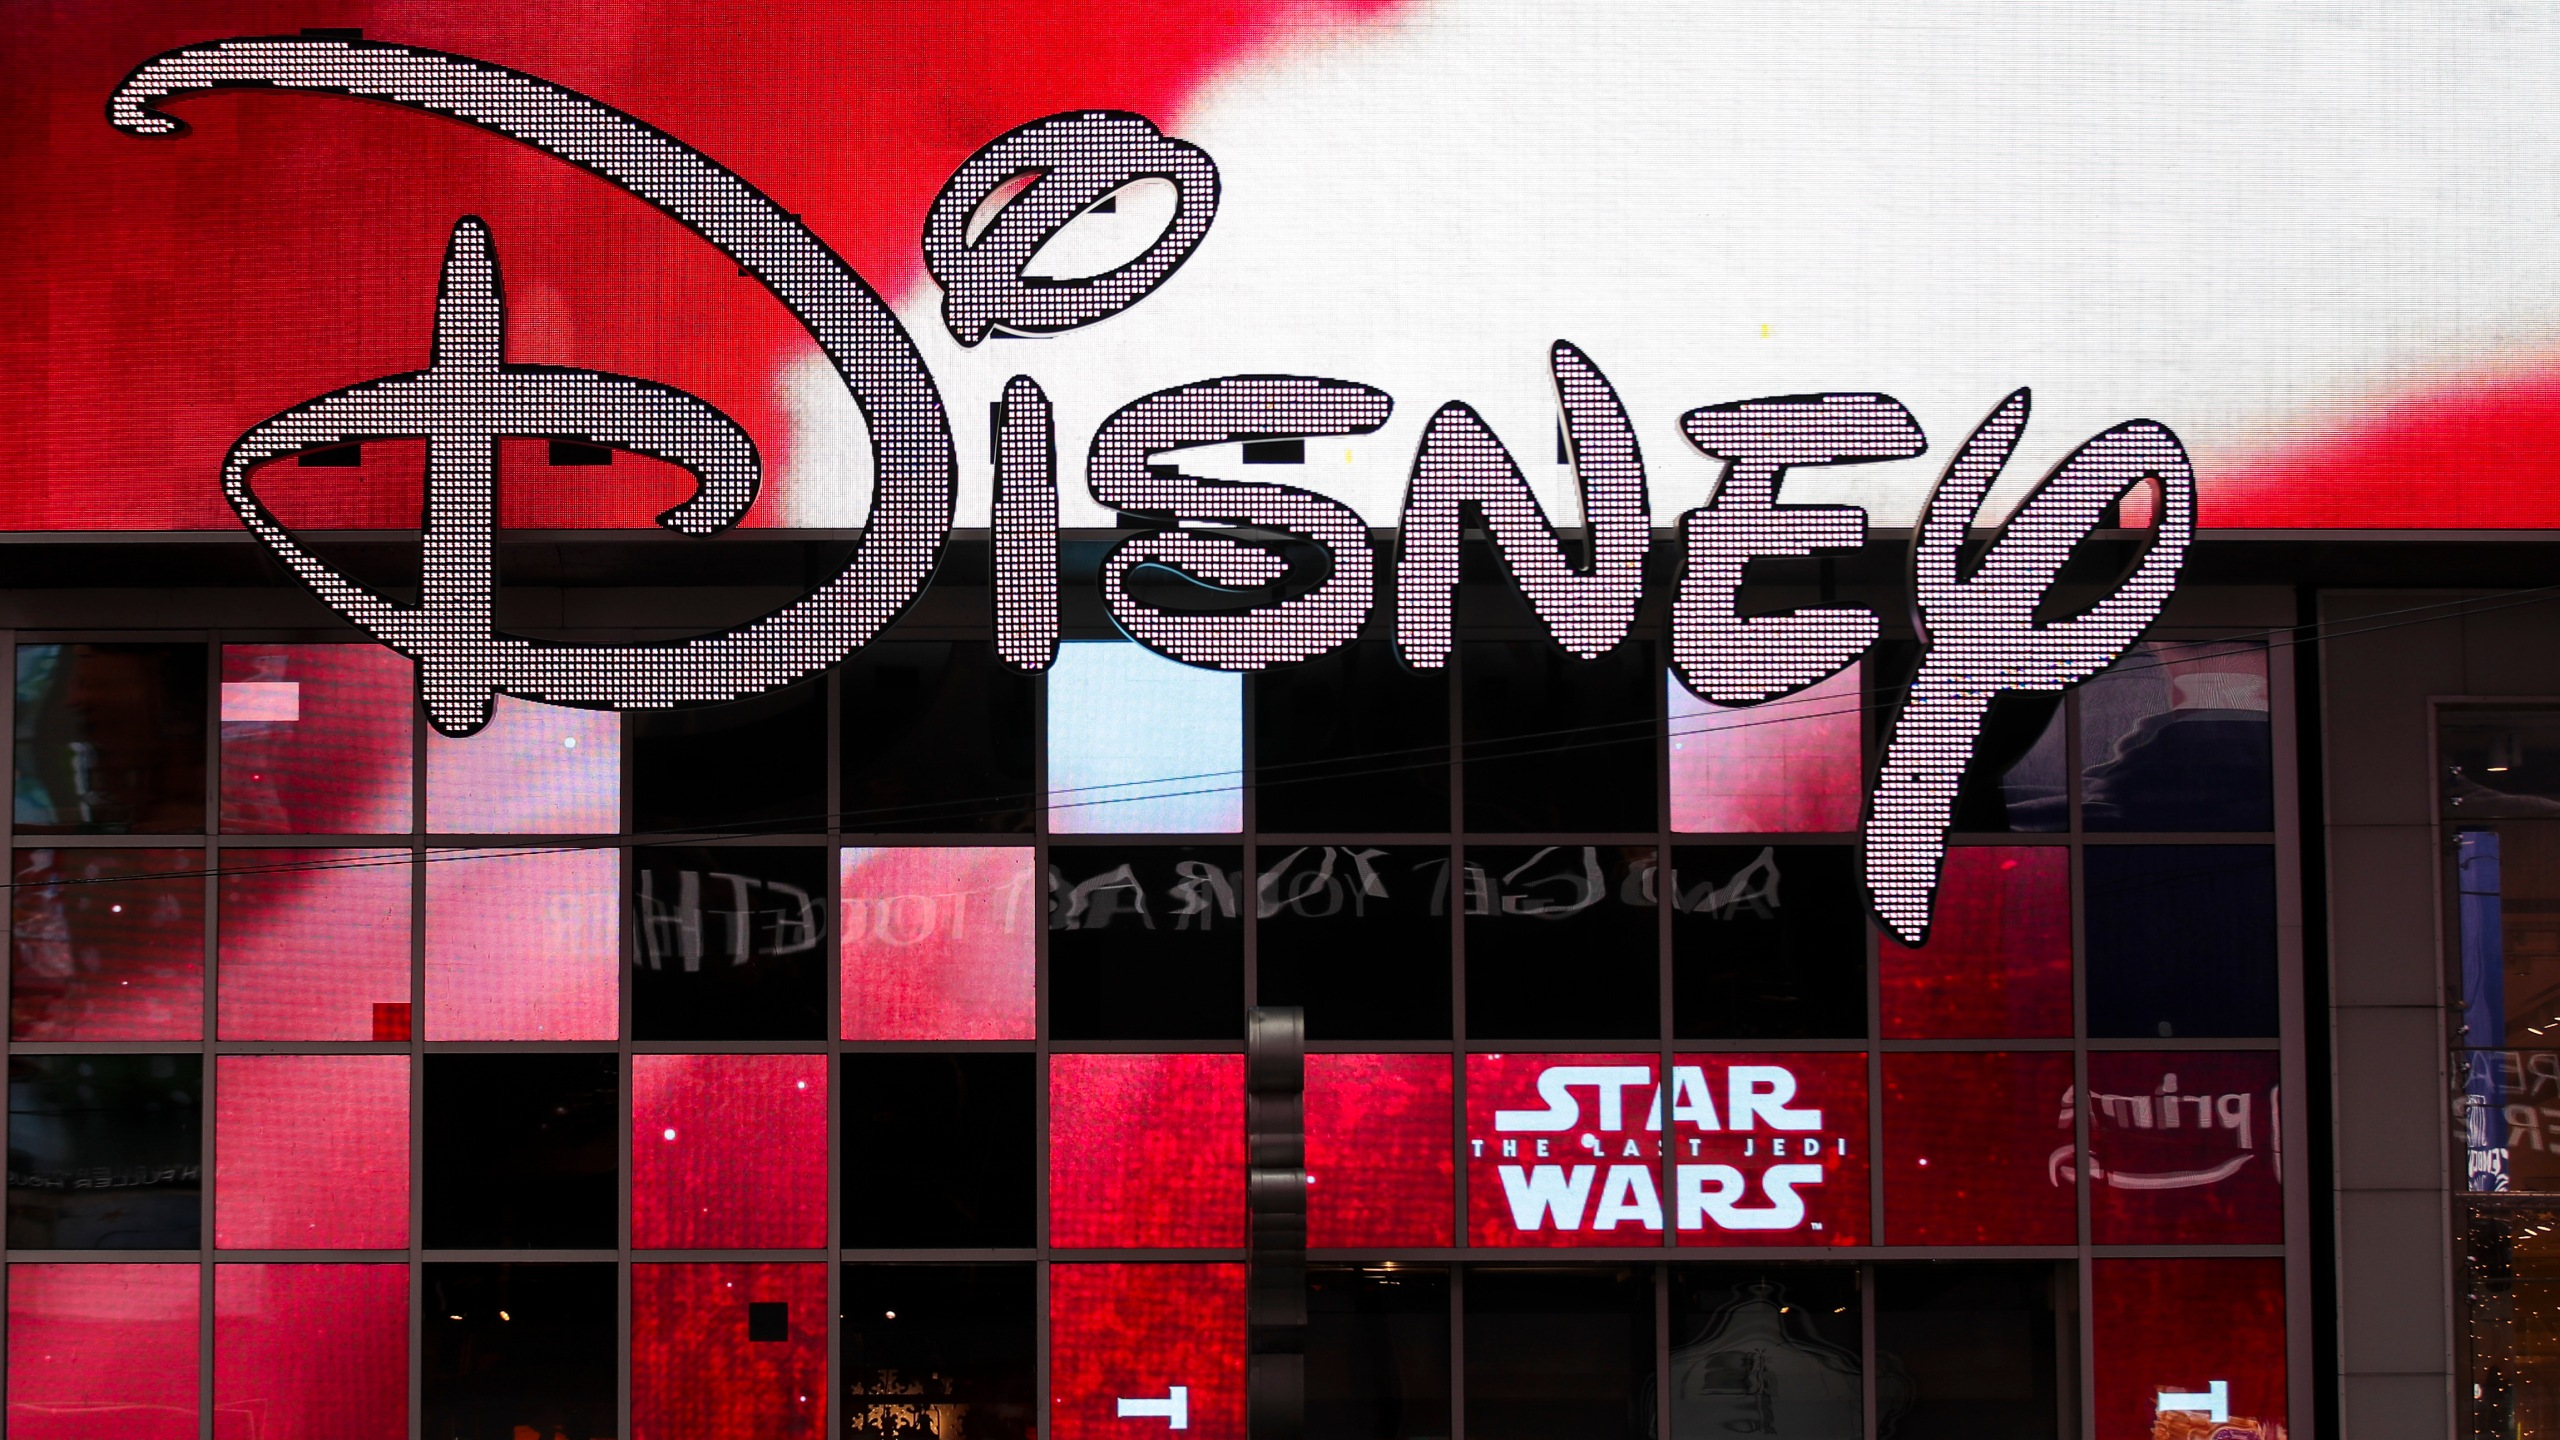 The Disney logo is displayed outside the Disney Store in Times Square on Dec. 14, 2017, in New York City. (Credit: Drew Angerer/Getty Images)